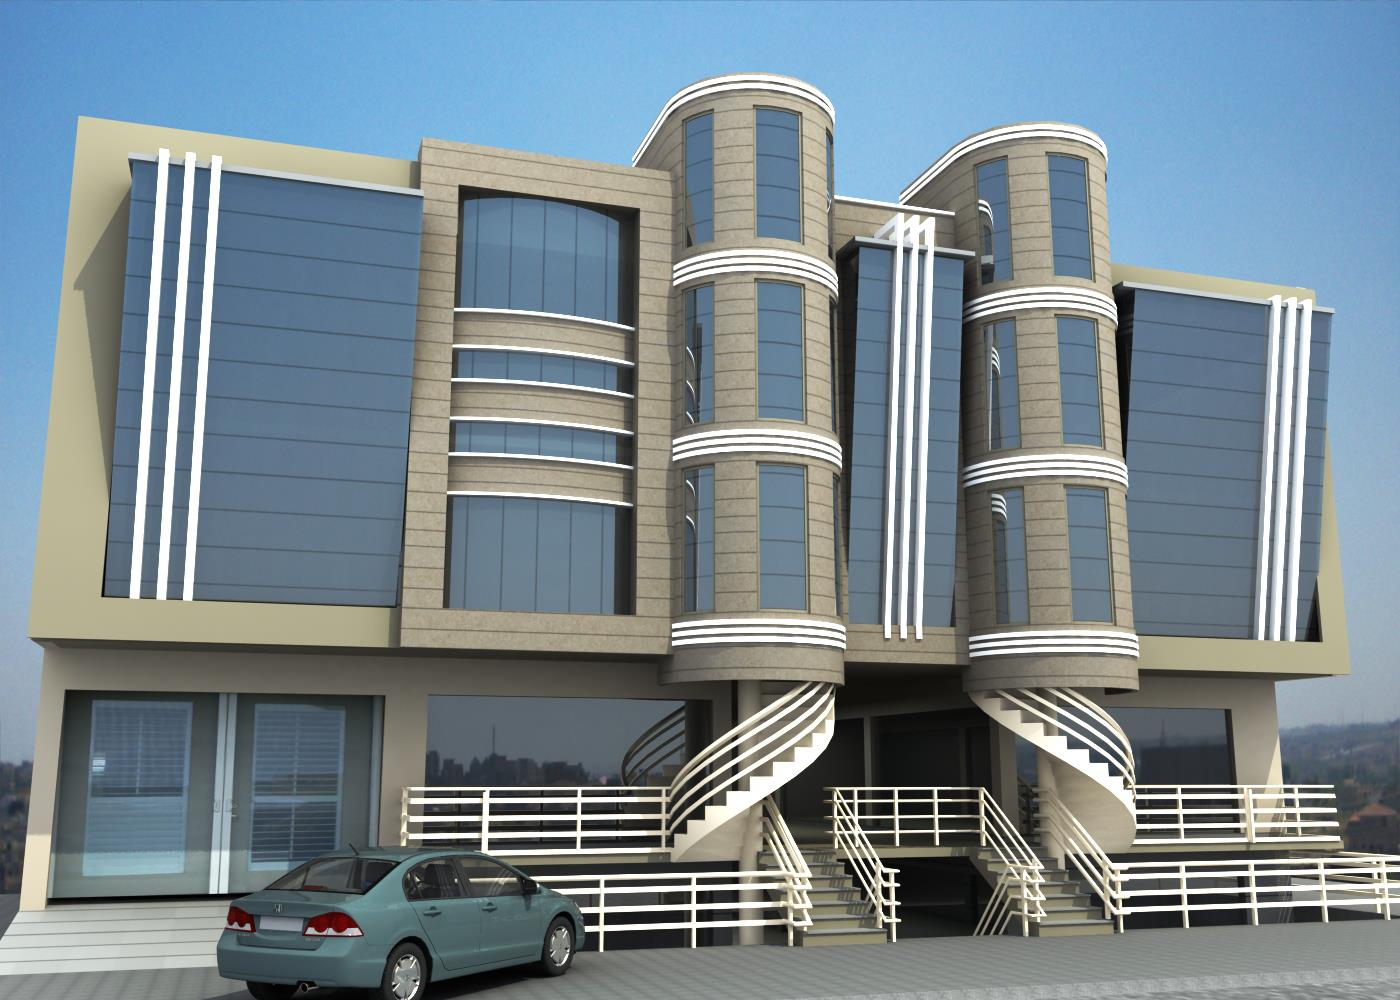 Commercial buildng design 3d architecture visualizations 3d house building